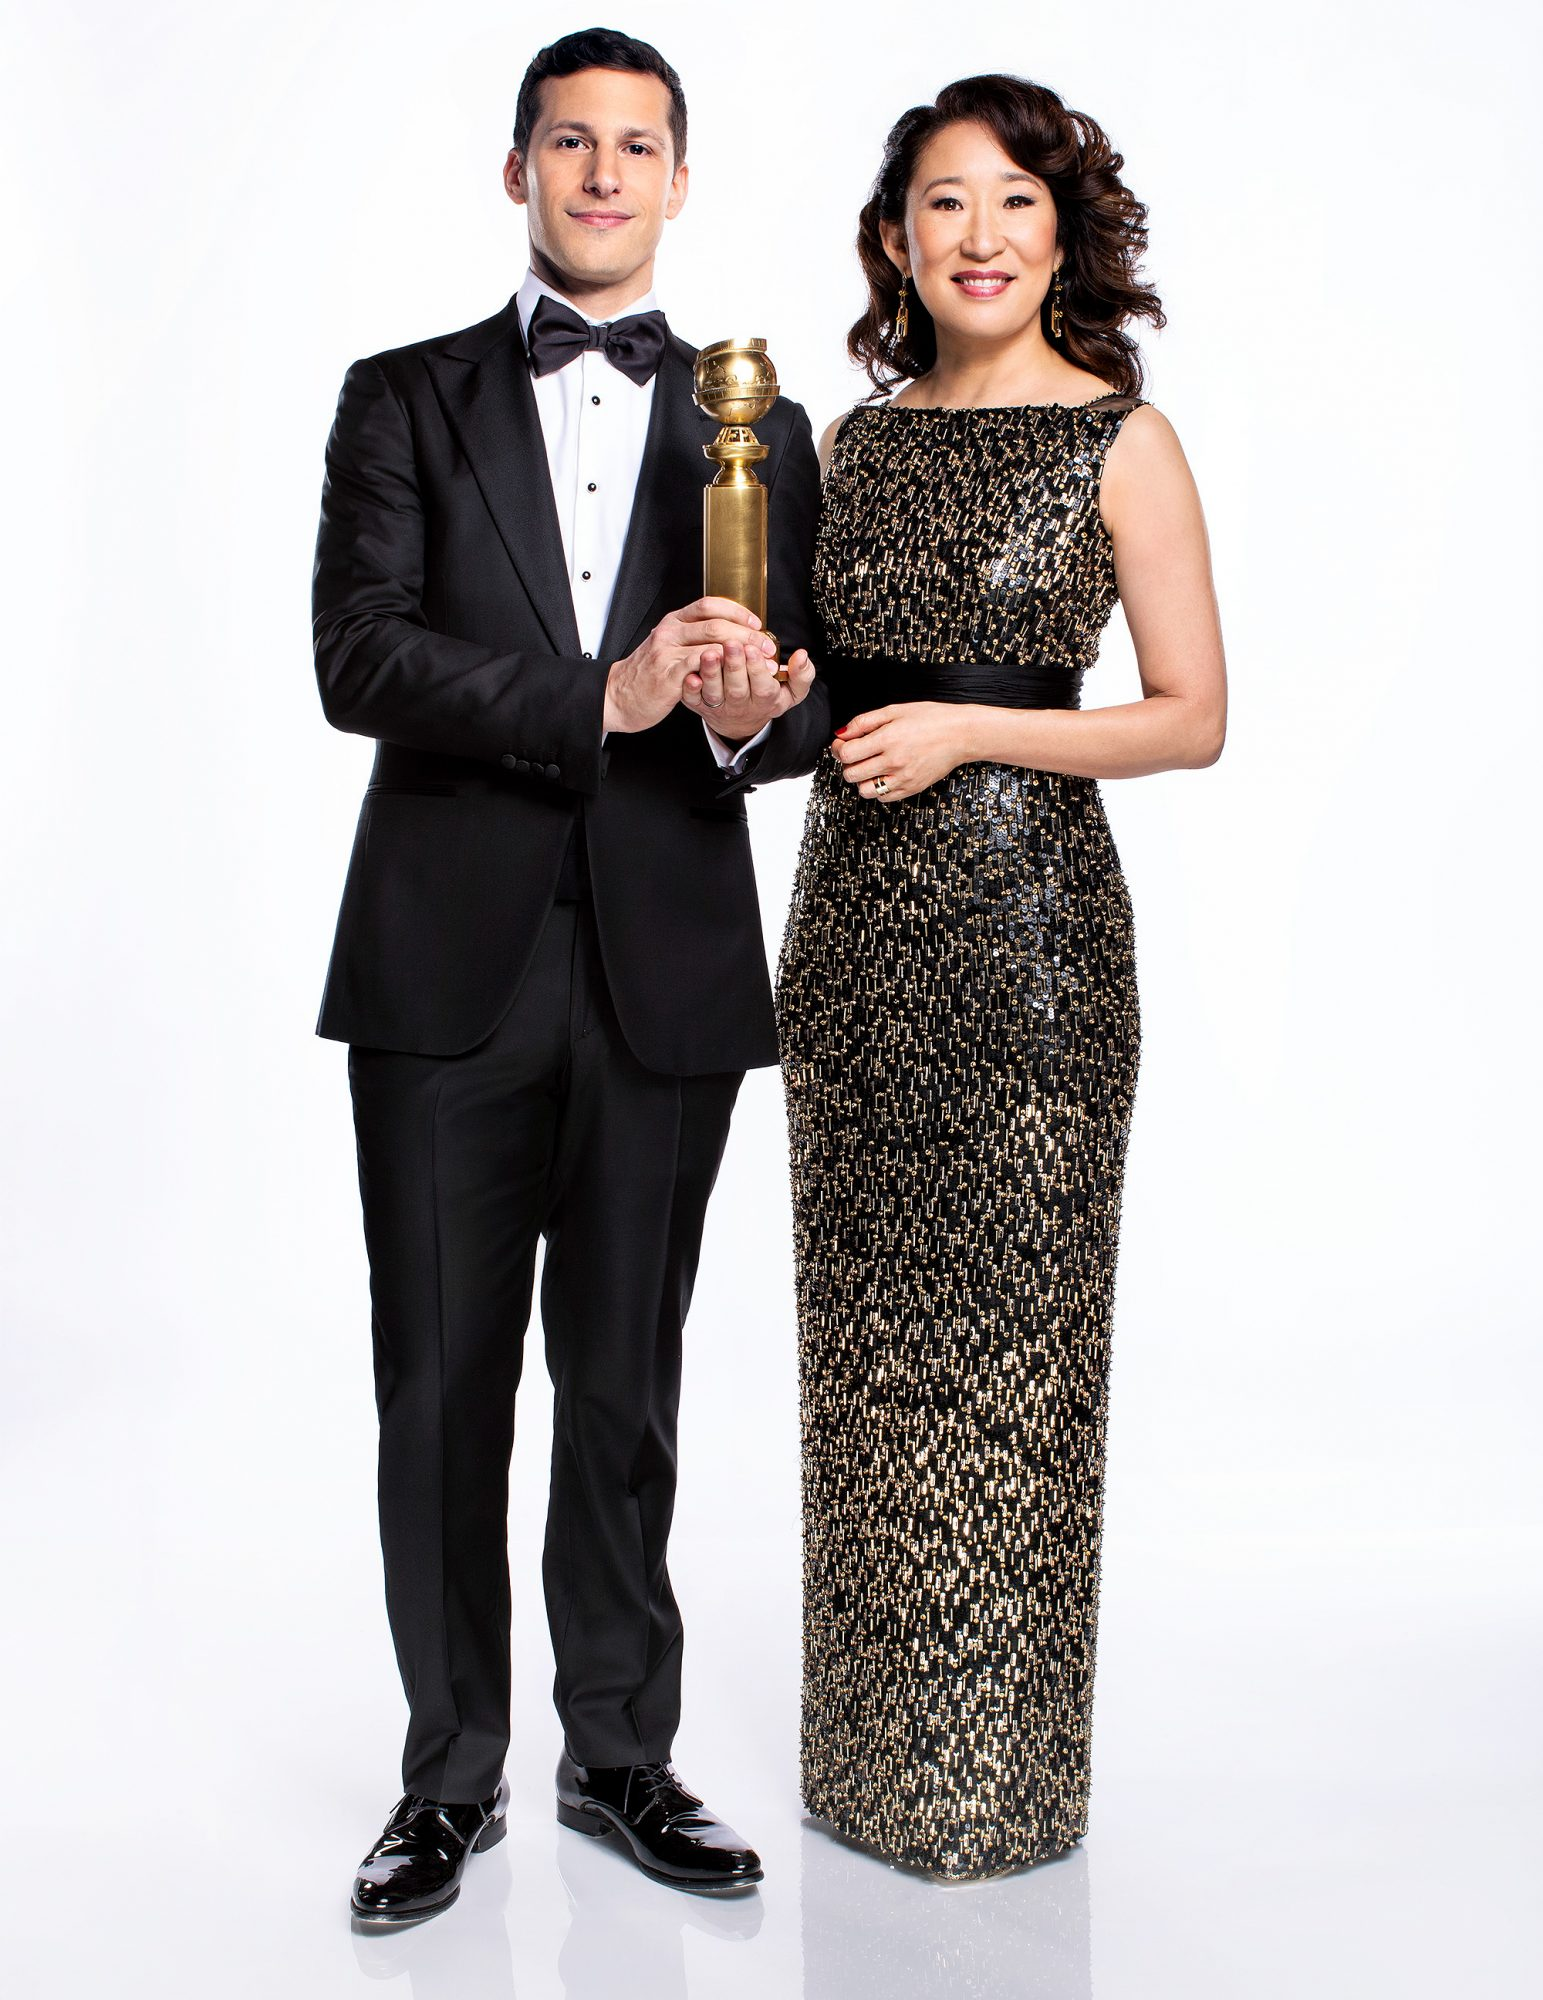 The Golden Globe Awards - Season 76